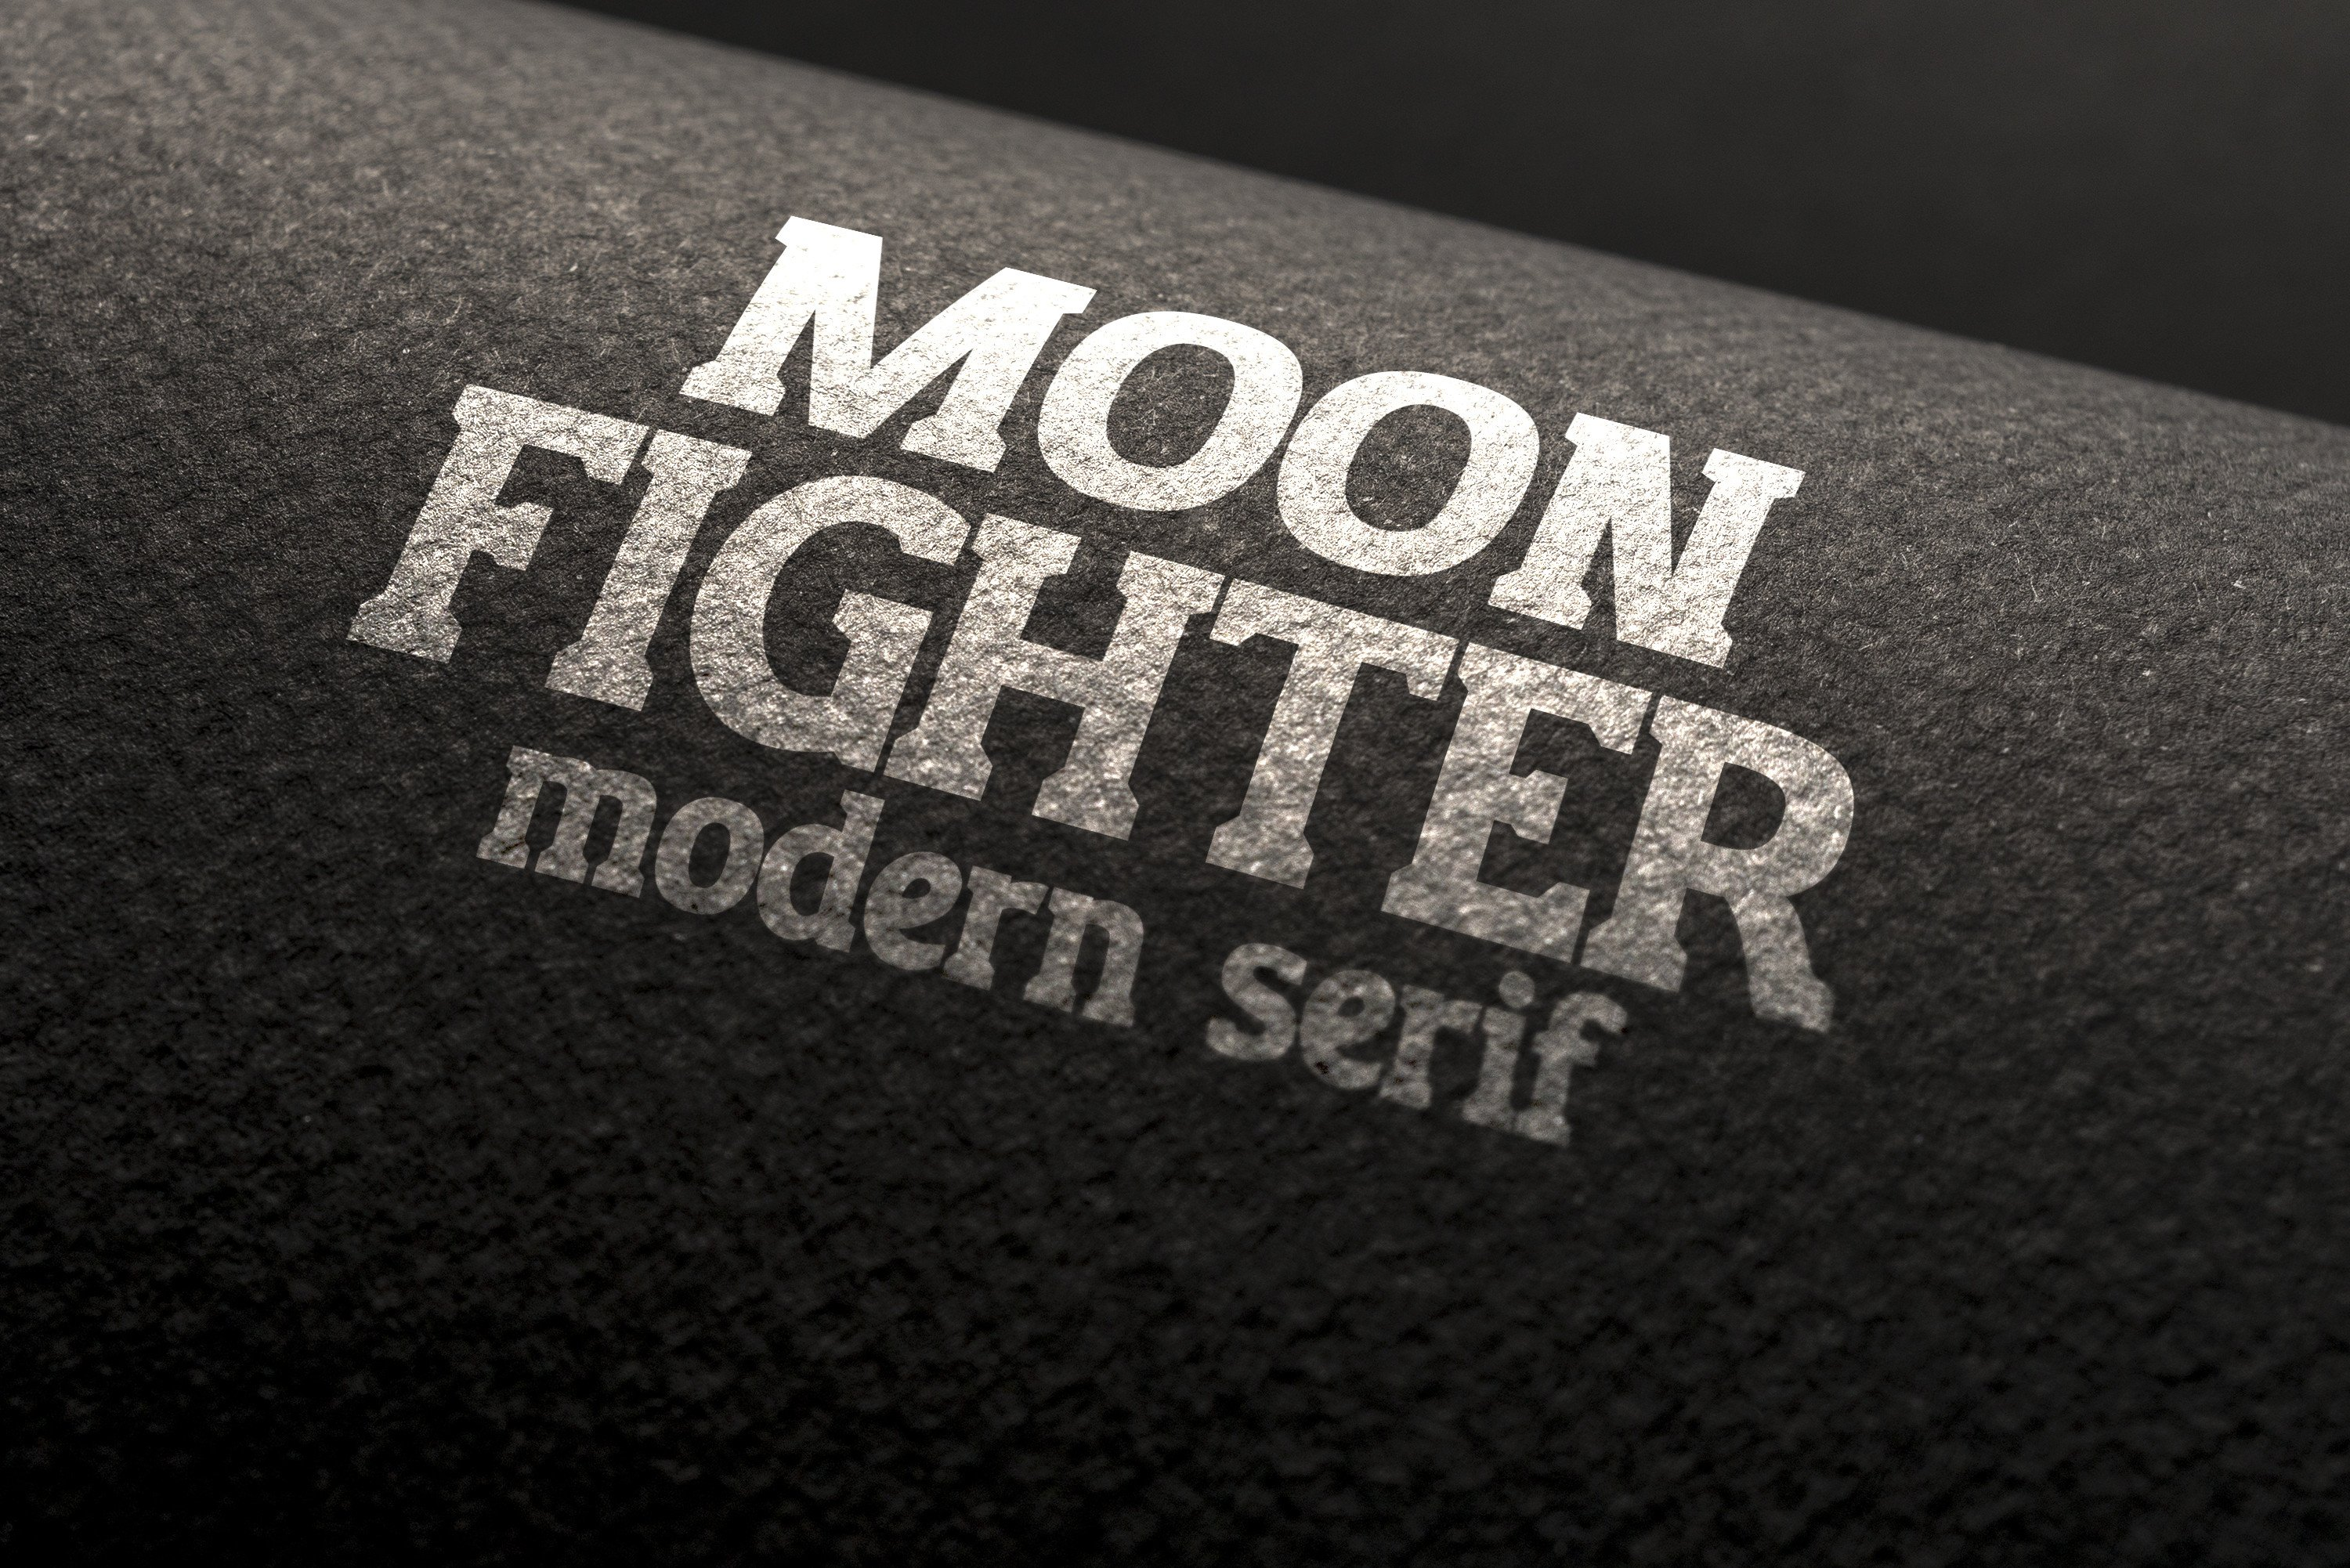 Moon Fighter Font By Ijem RockArt